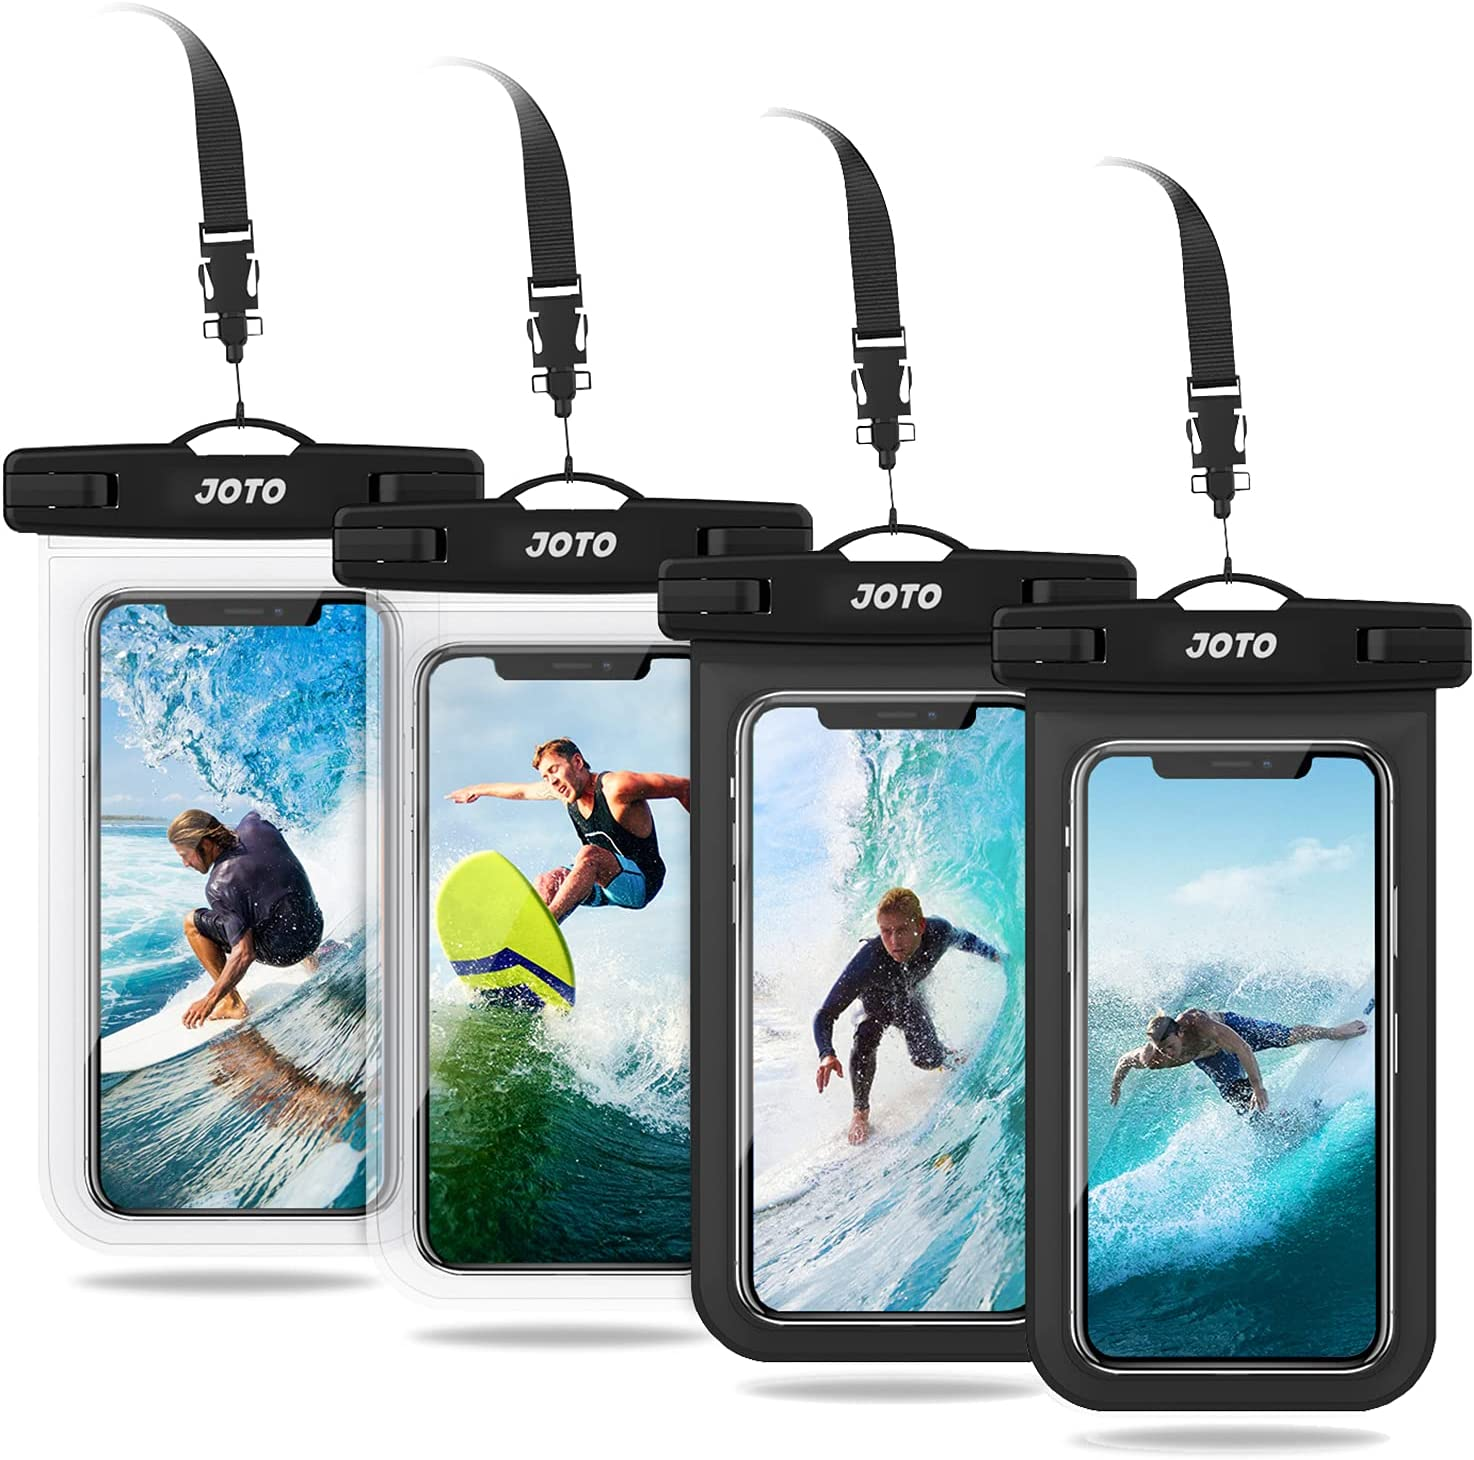 JOTO Universal Waterproof Phone Pouch up to 7 inch, Dry Bag Underwater Case for iPhone 13 Pro Max 12 11 XS XR 8 7 Plus, Galaxy S21 Ultra/A42/S10 Note10,Moto,Pixel -4 Pack, 2Black/2Clear